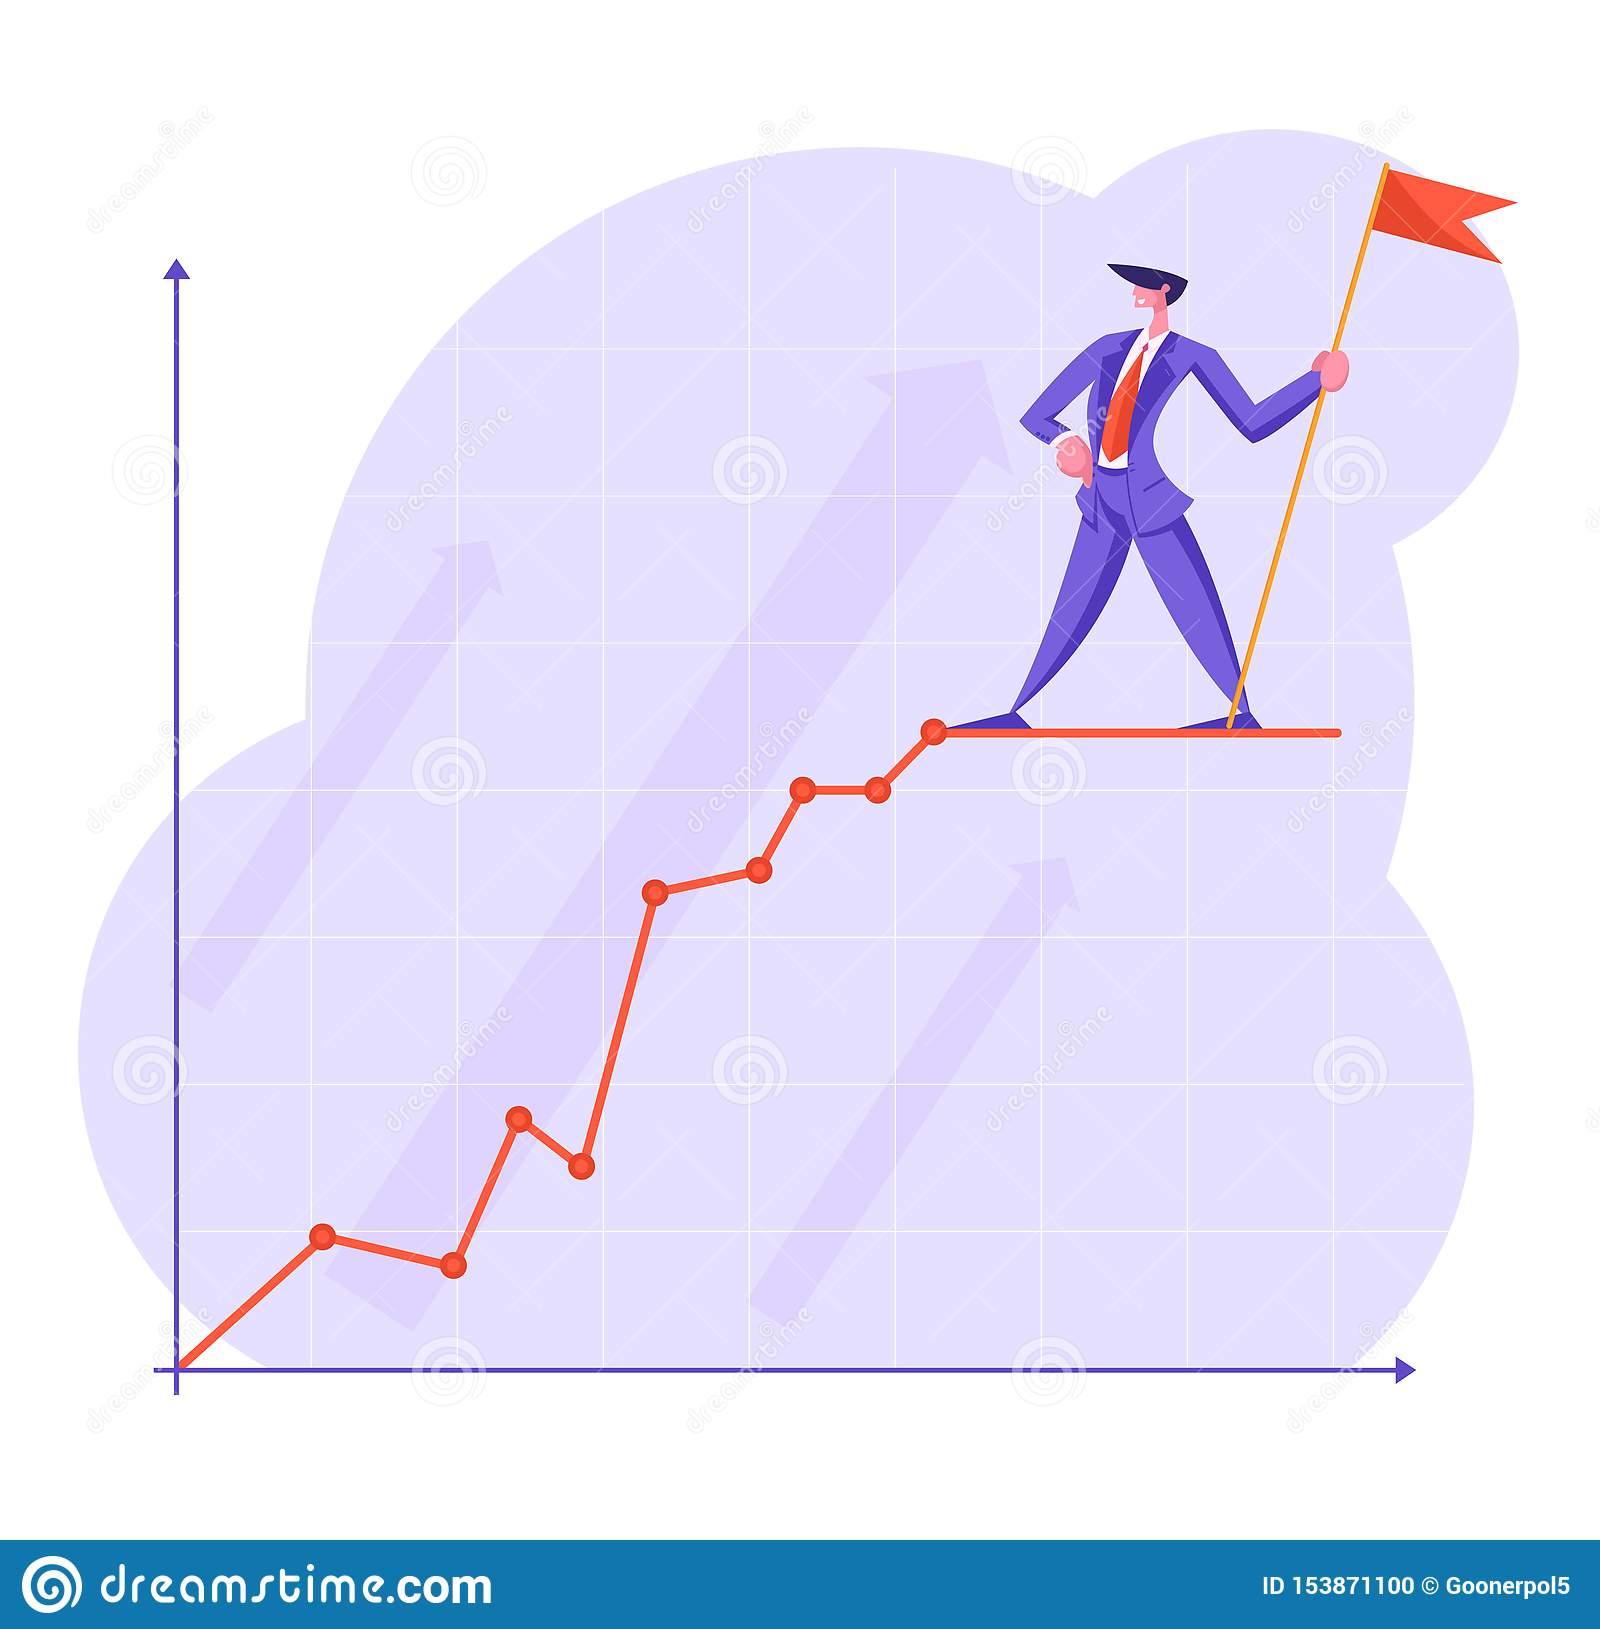 Businessman with Red Flag Stand on Top of Growing Business Chart Curve Line on Coordinate System